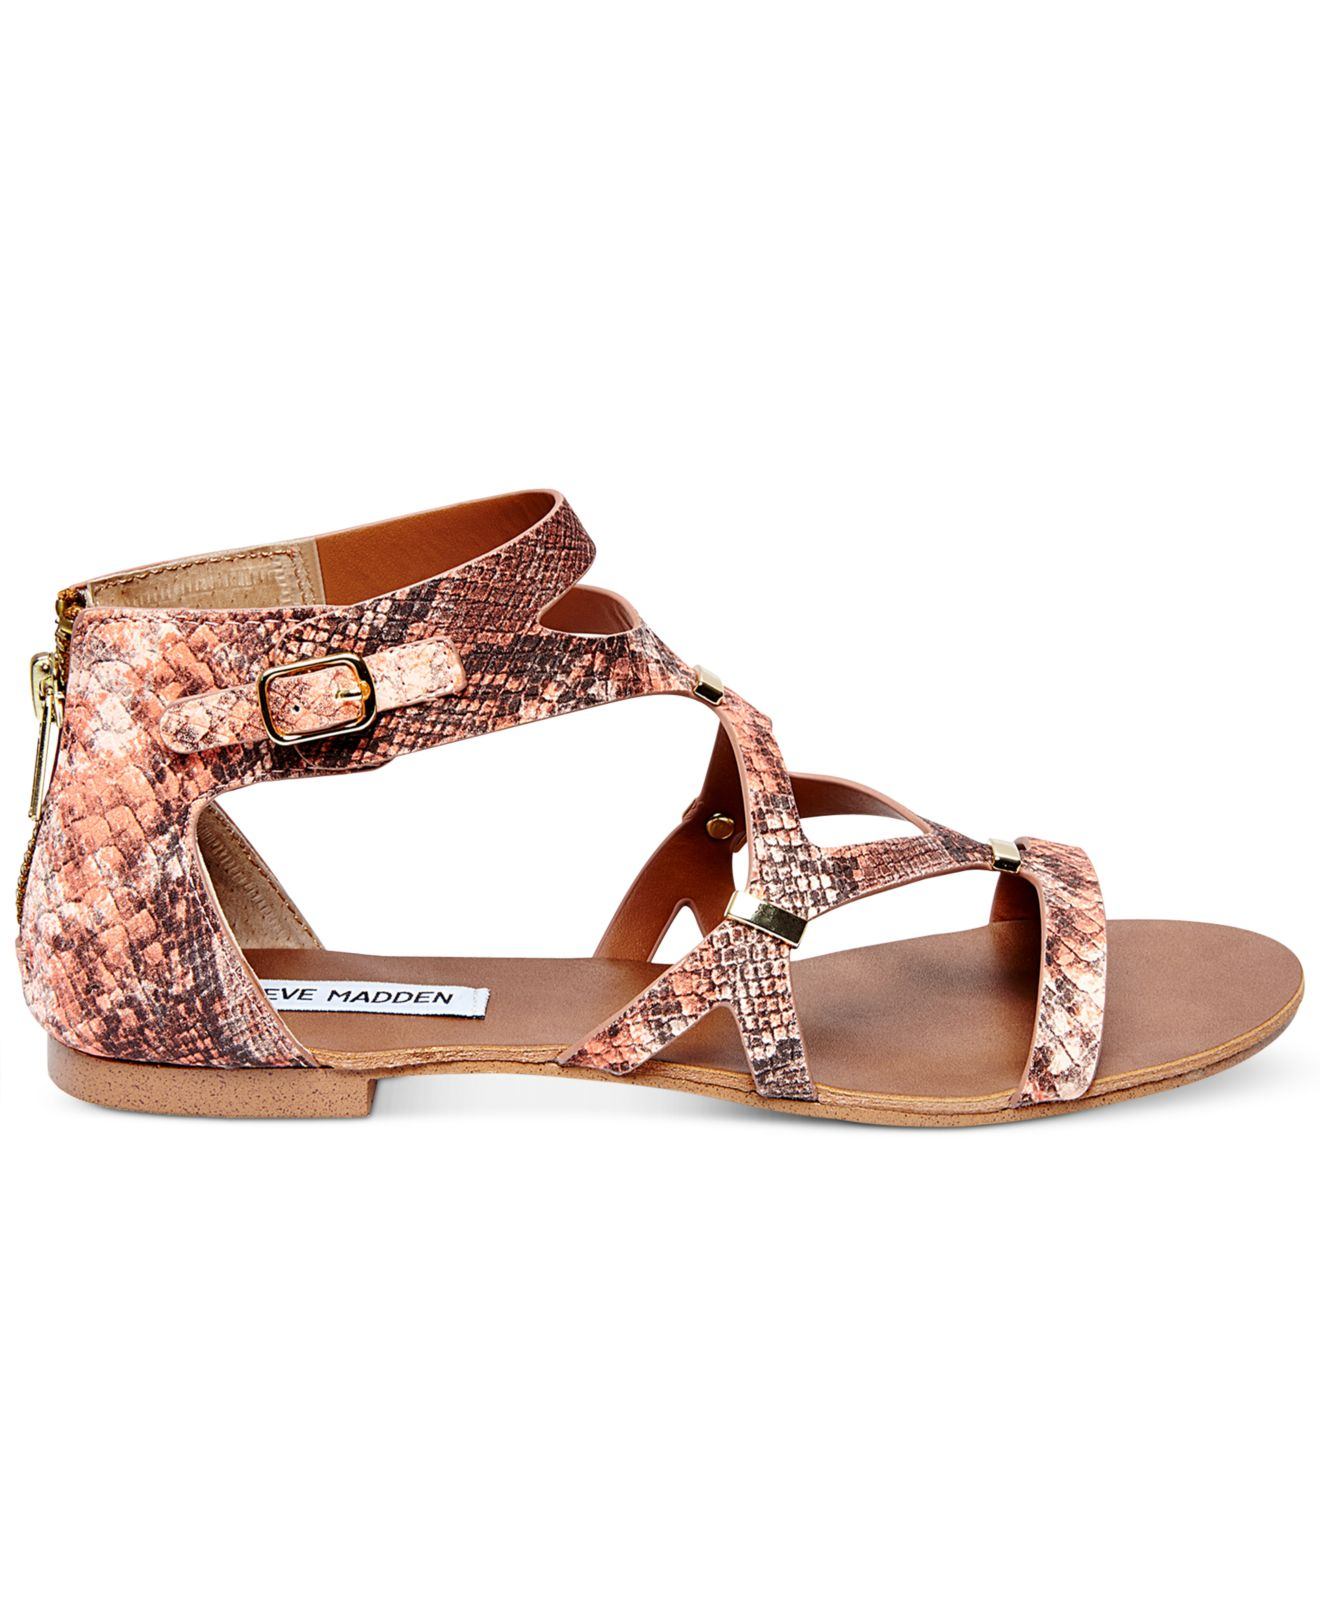 Lyst Steve Madden Comly Flat Sandals In Pink